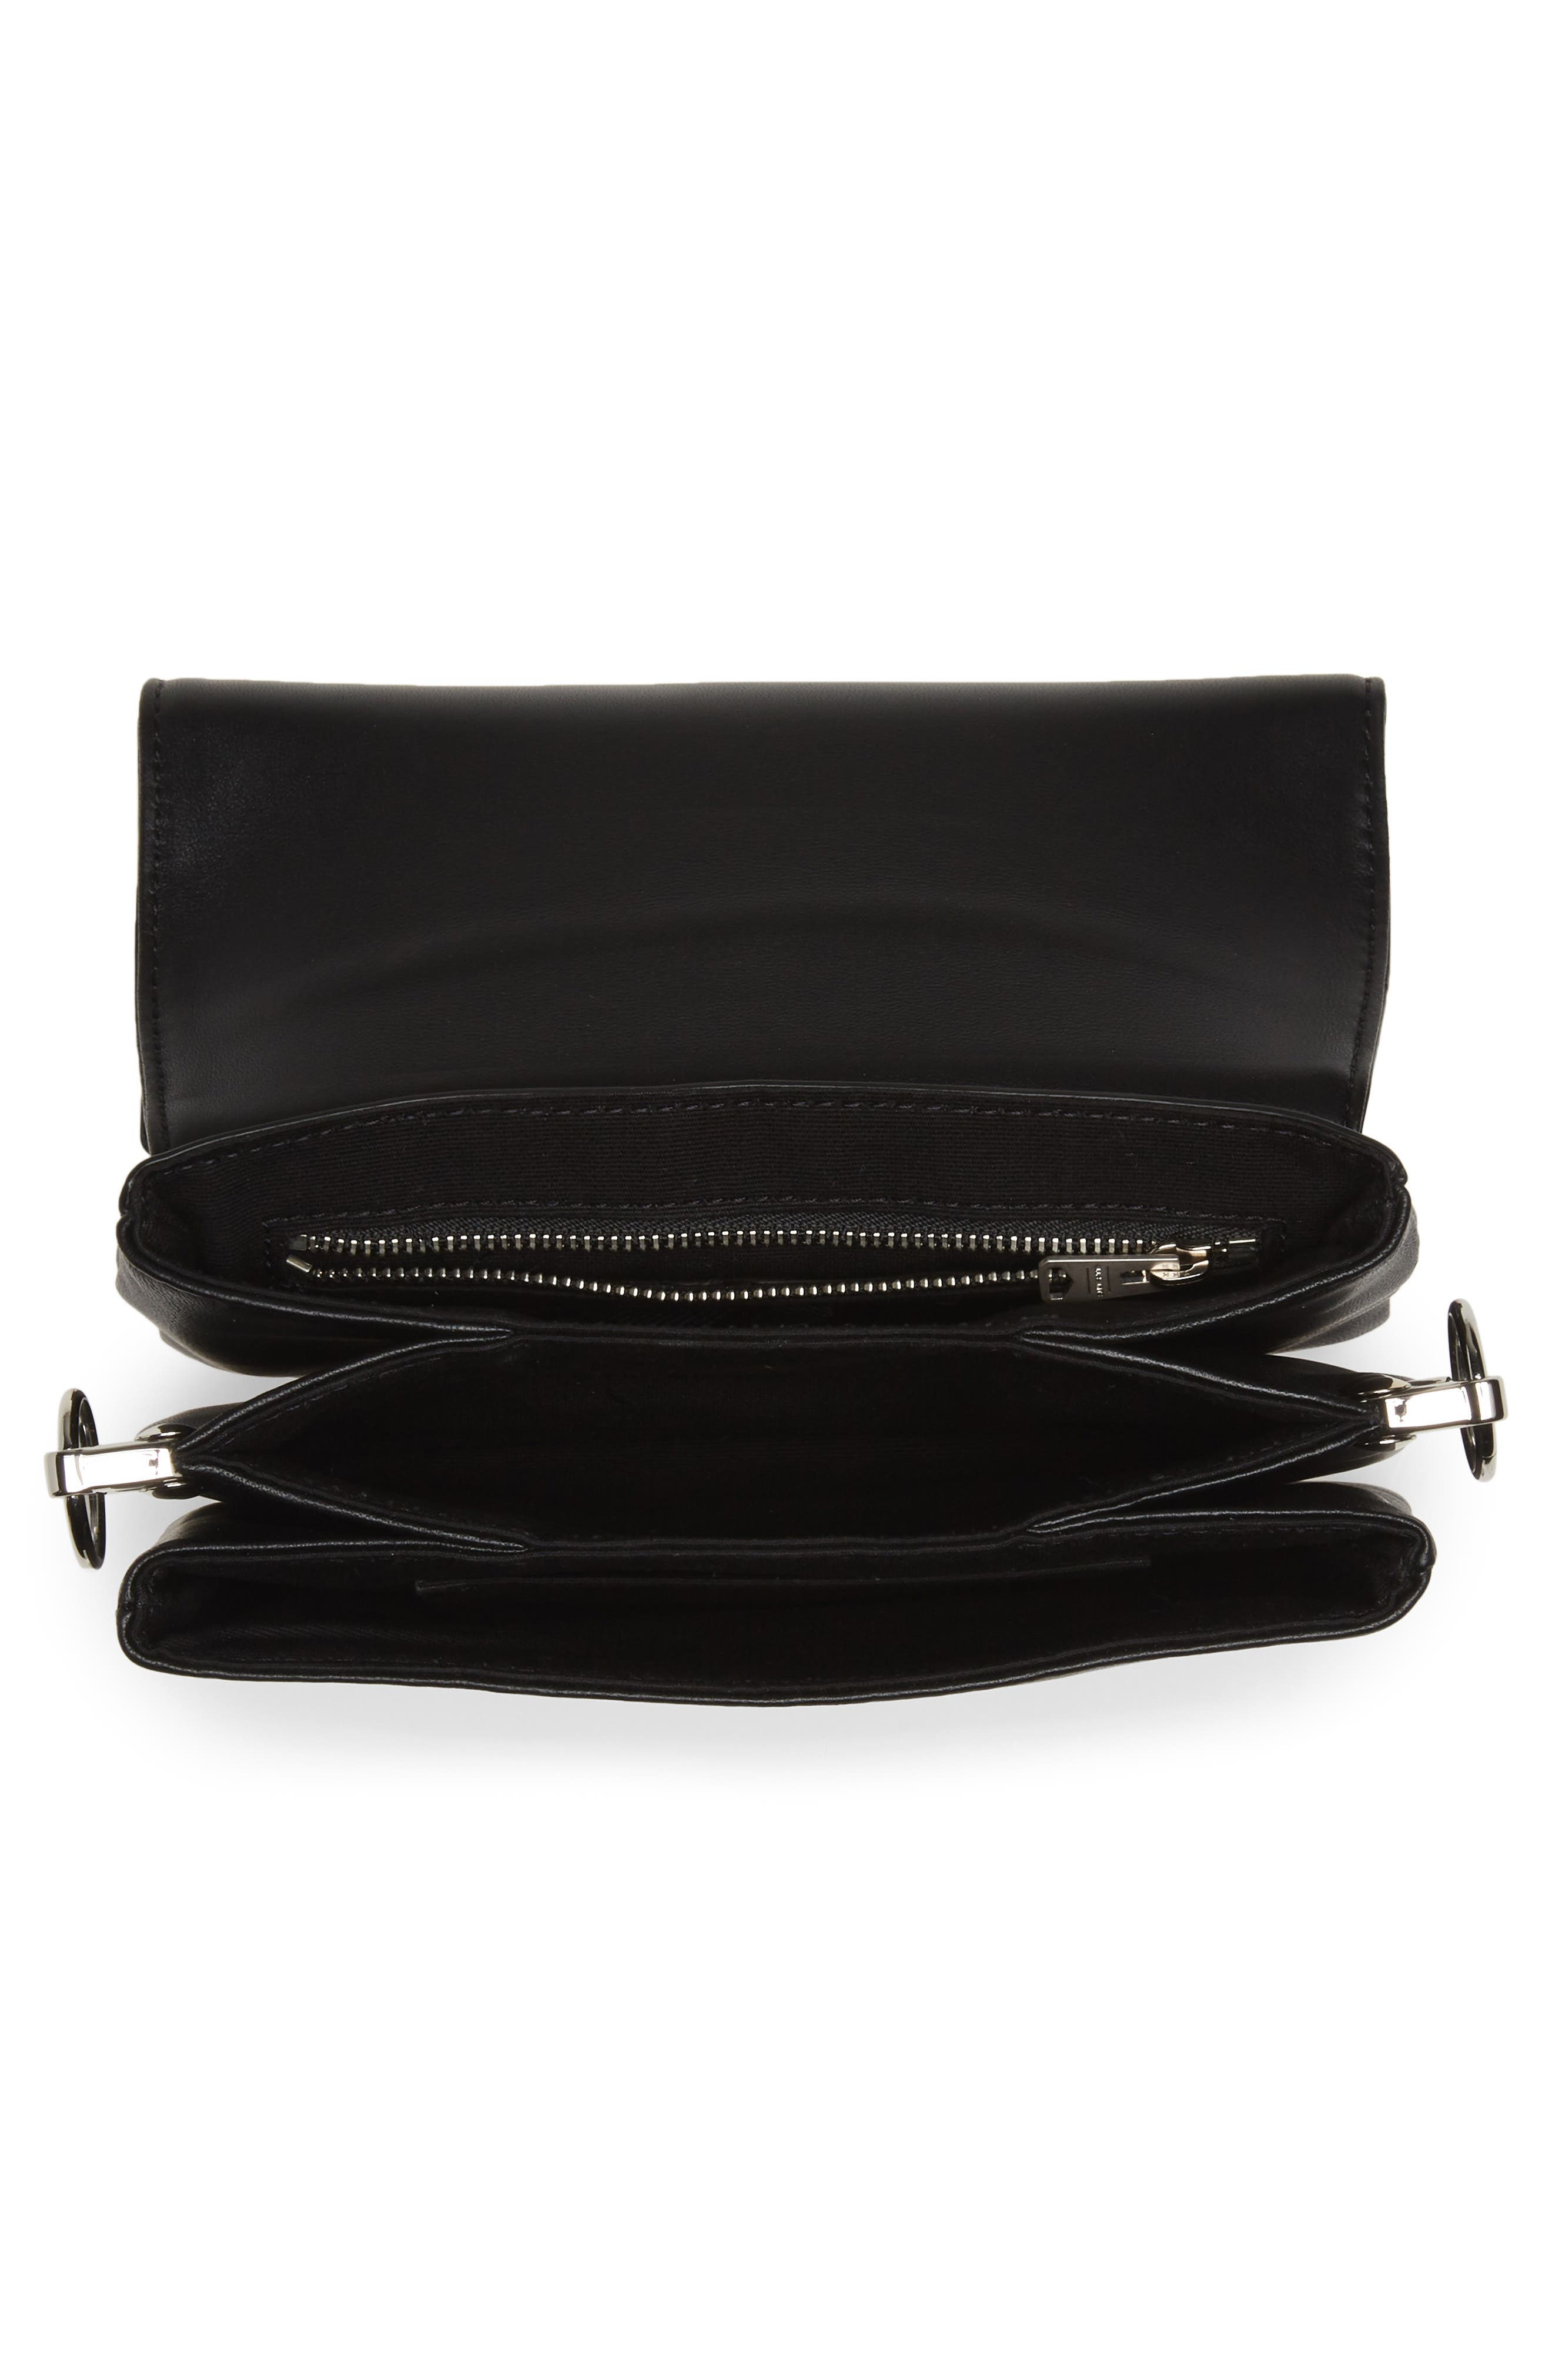 ALLSAINTS, Captain Mirror Flap Leather Shoulder Bag, Alternate thumbnail 5, color, GUNMETAL